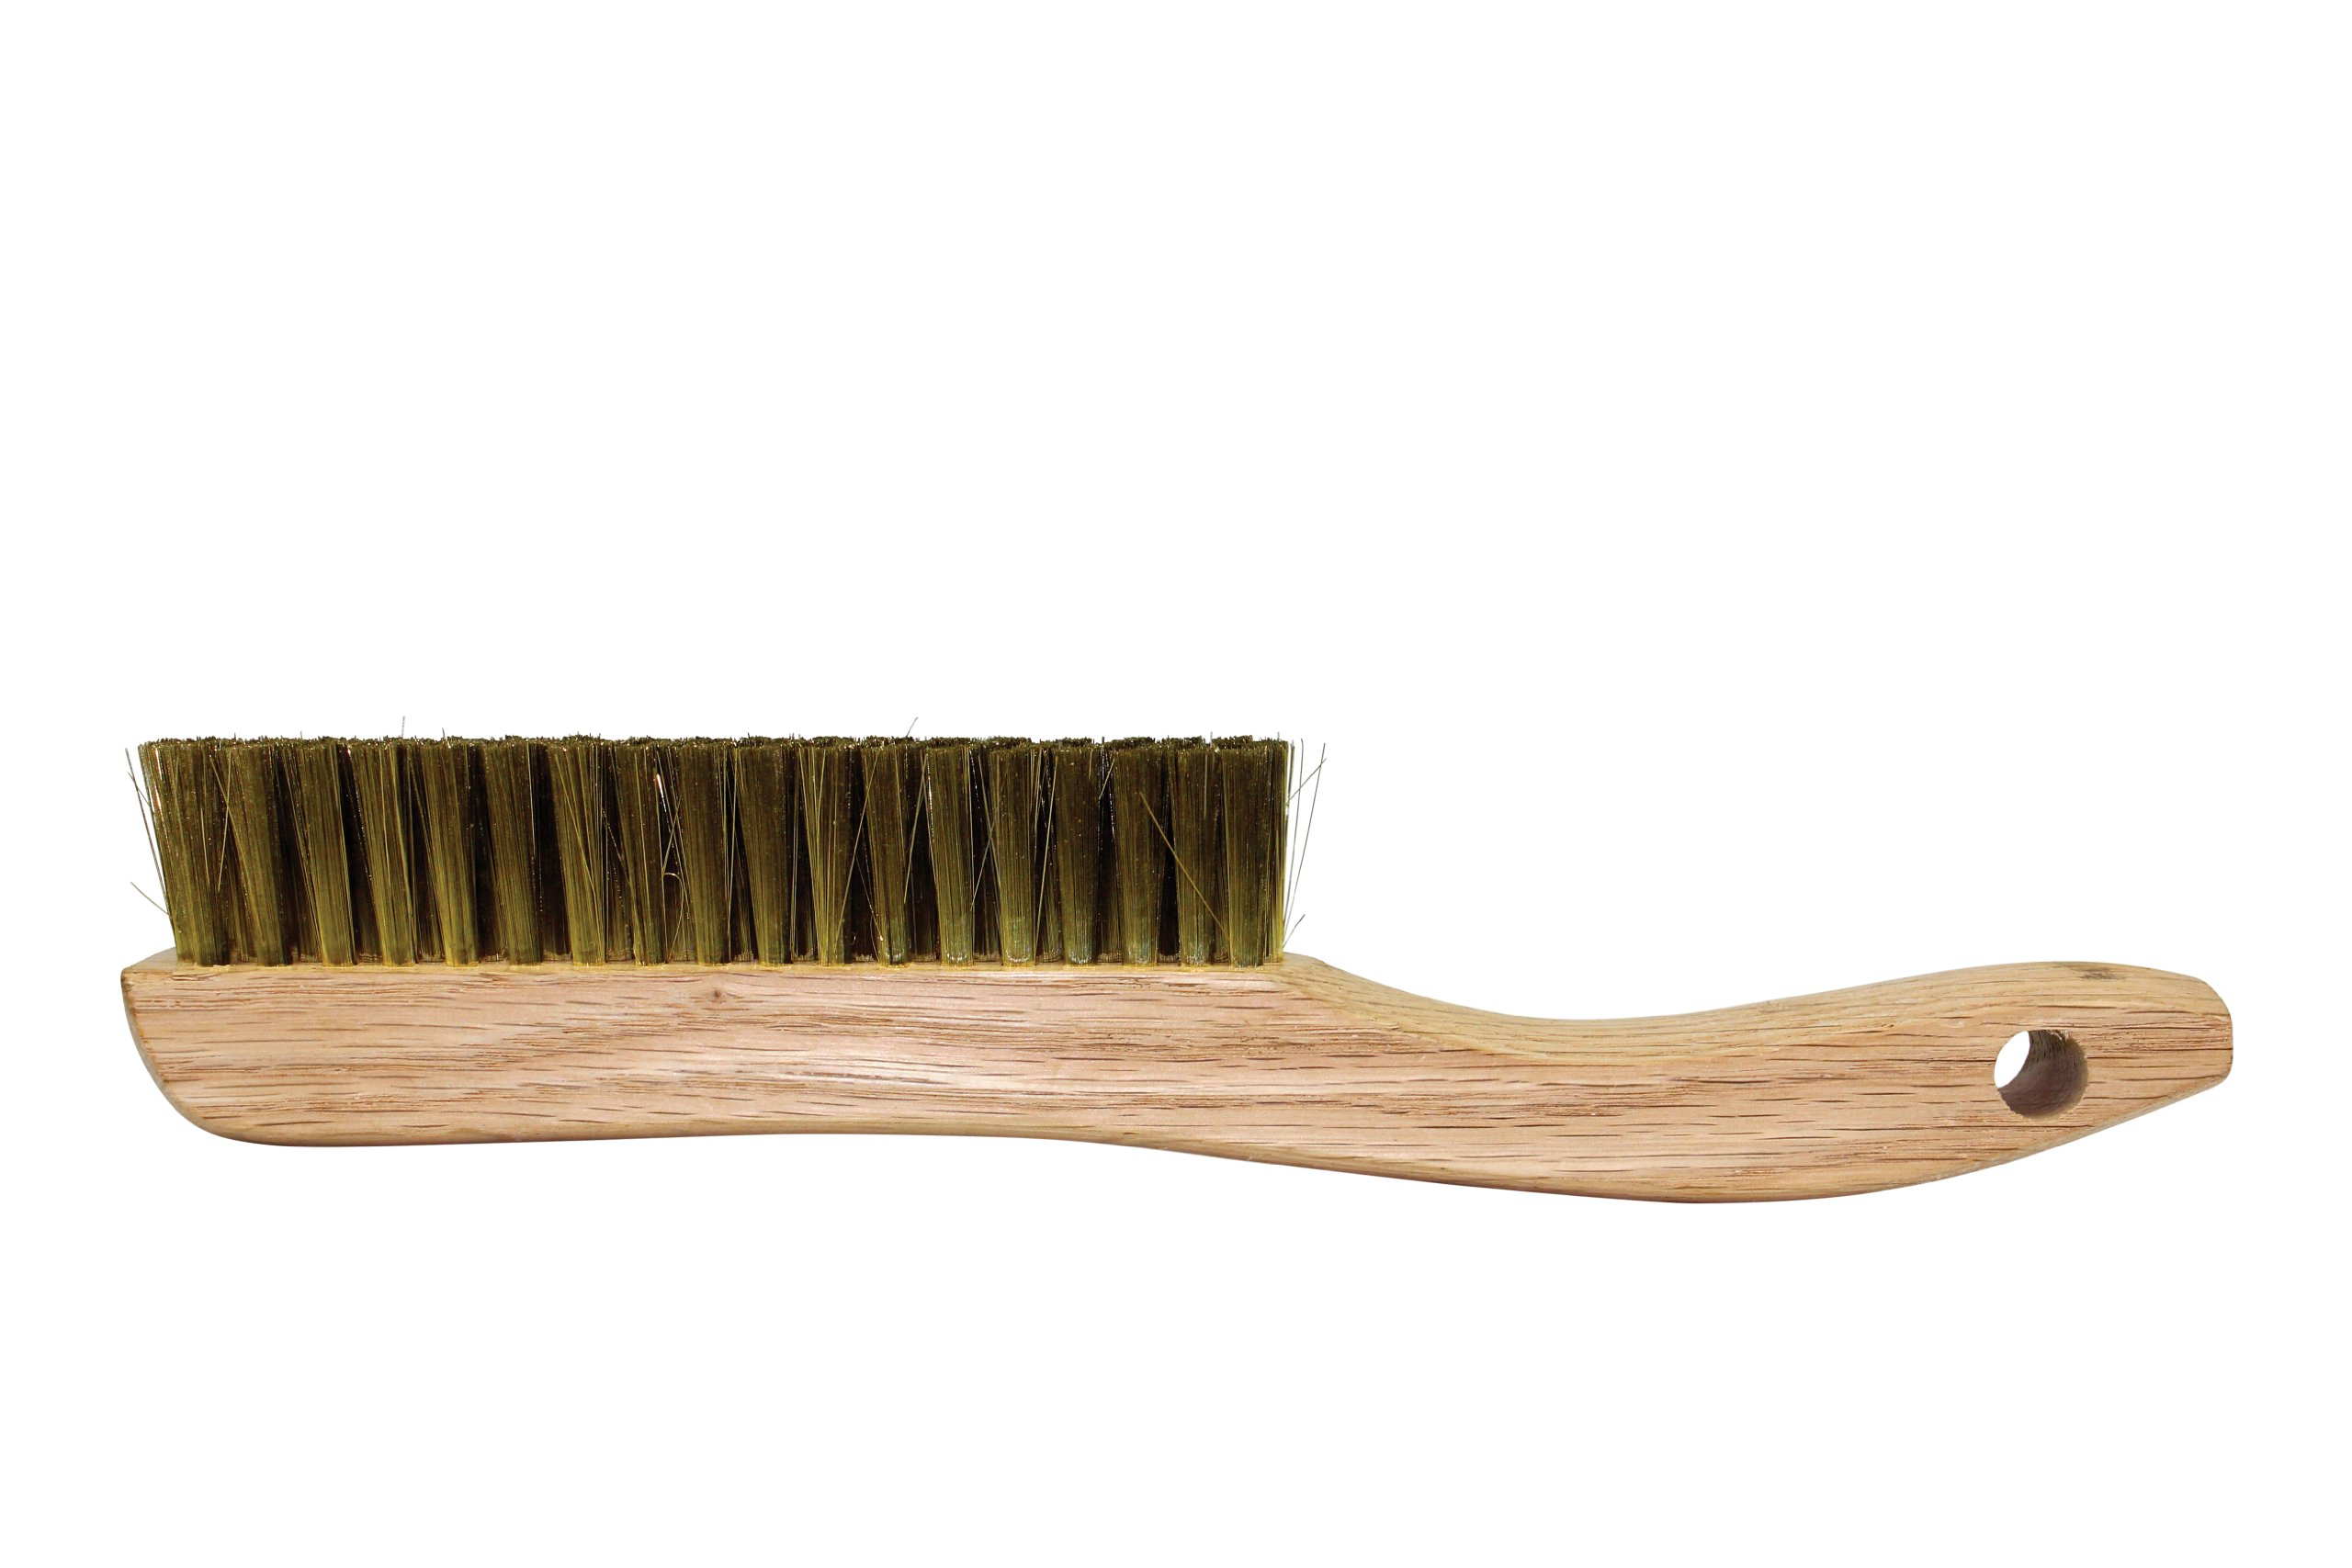 Osborn 54036 Plater's Fine Solid Wood Block Wire Scratch Brush with Long Curved Handle, Fine Brass Wire Bristle, 5-3/4'' Length, 1-1/8'' Width Brush, 13-1/4'' Overall Length